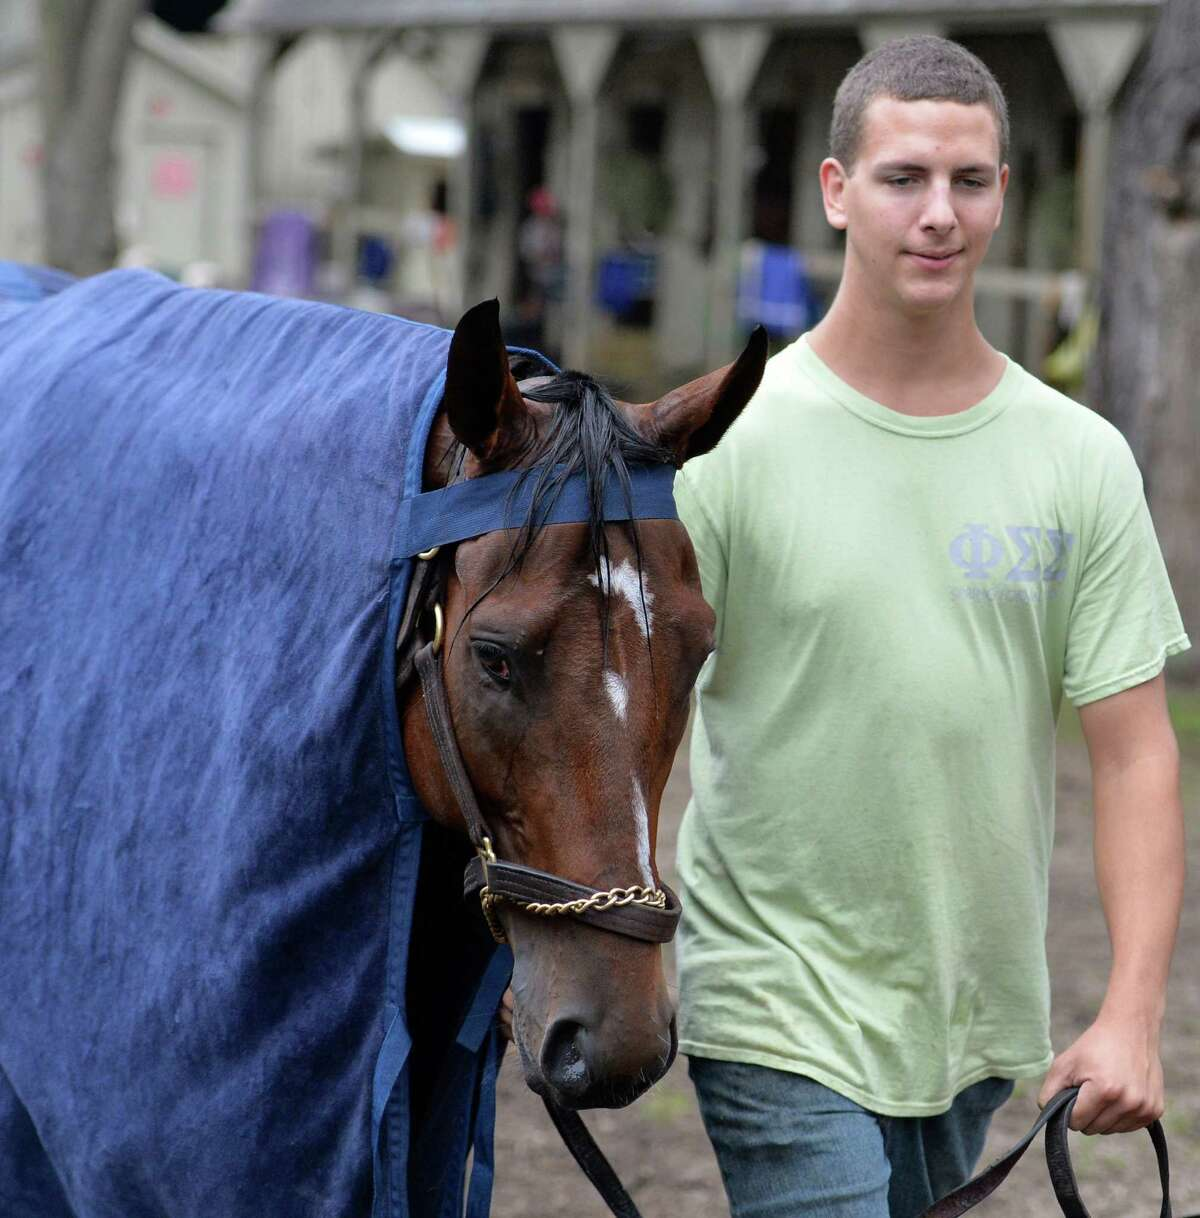 Tim Kaylor cools out Smart Transitions who won the Curlin Stakes earlier in the meeting early Sunday morning Aug 16, 2015 at the Oklahoma Training Center in Saratoga Springs, N.Y. Smart Transitions will be brought back for another start toward the end of August. Smart Transitions is by sire Smart Strike and out of the mare Zardana. (Skip Dickstein/Times Union)